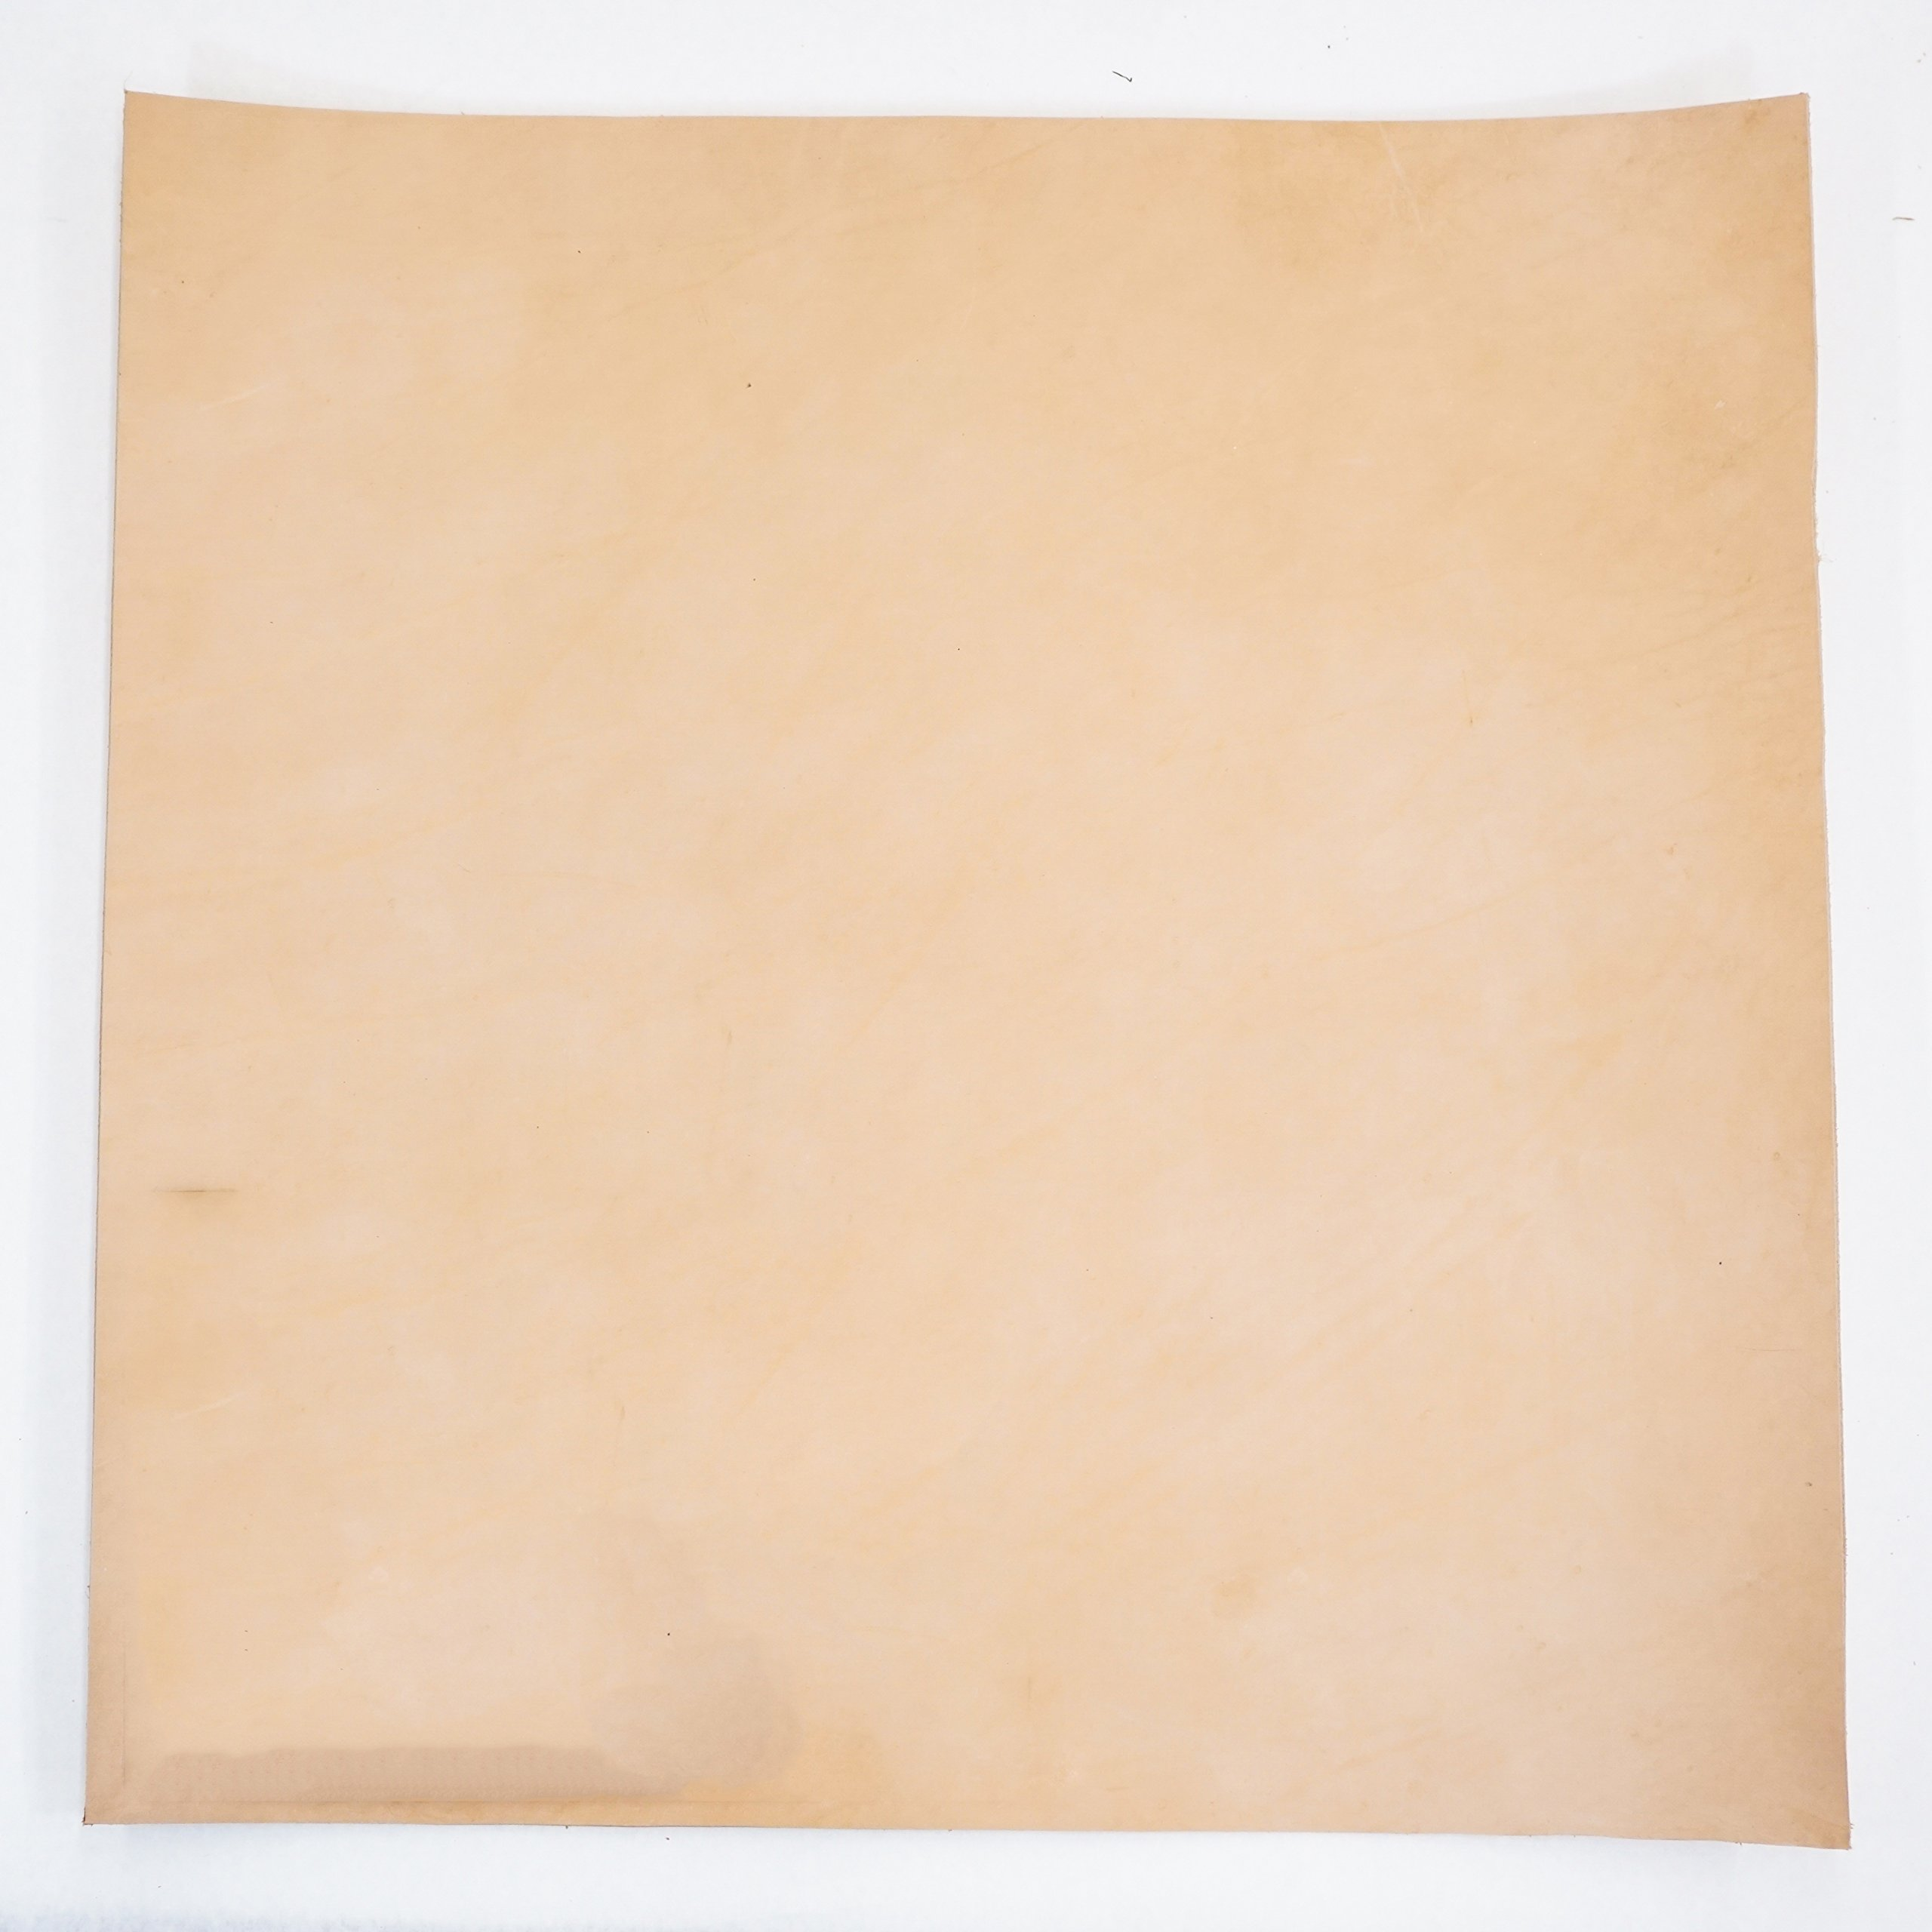 Import Vegetable Tan Cowhide Tooling Leather 8-9oz Pre-Cut (24''x24'')